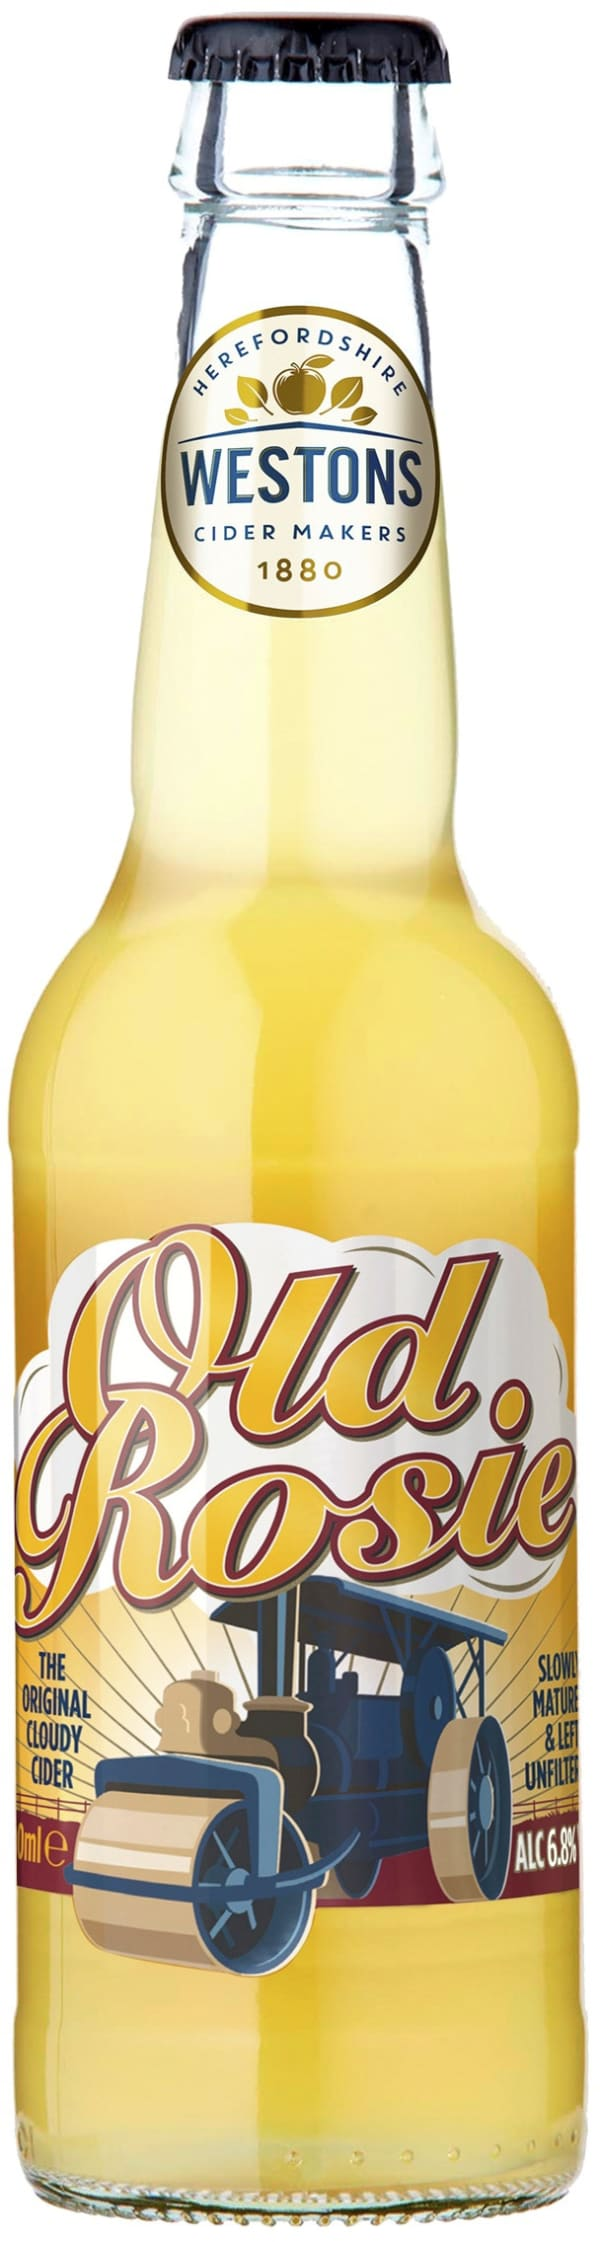 Westons Old Rosie Cloudy Cider